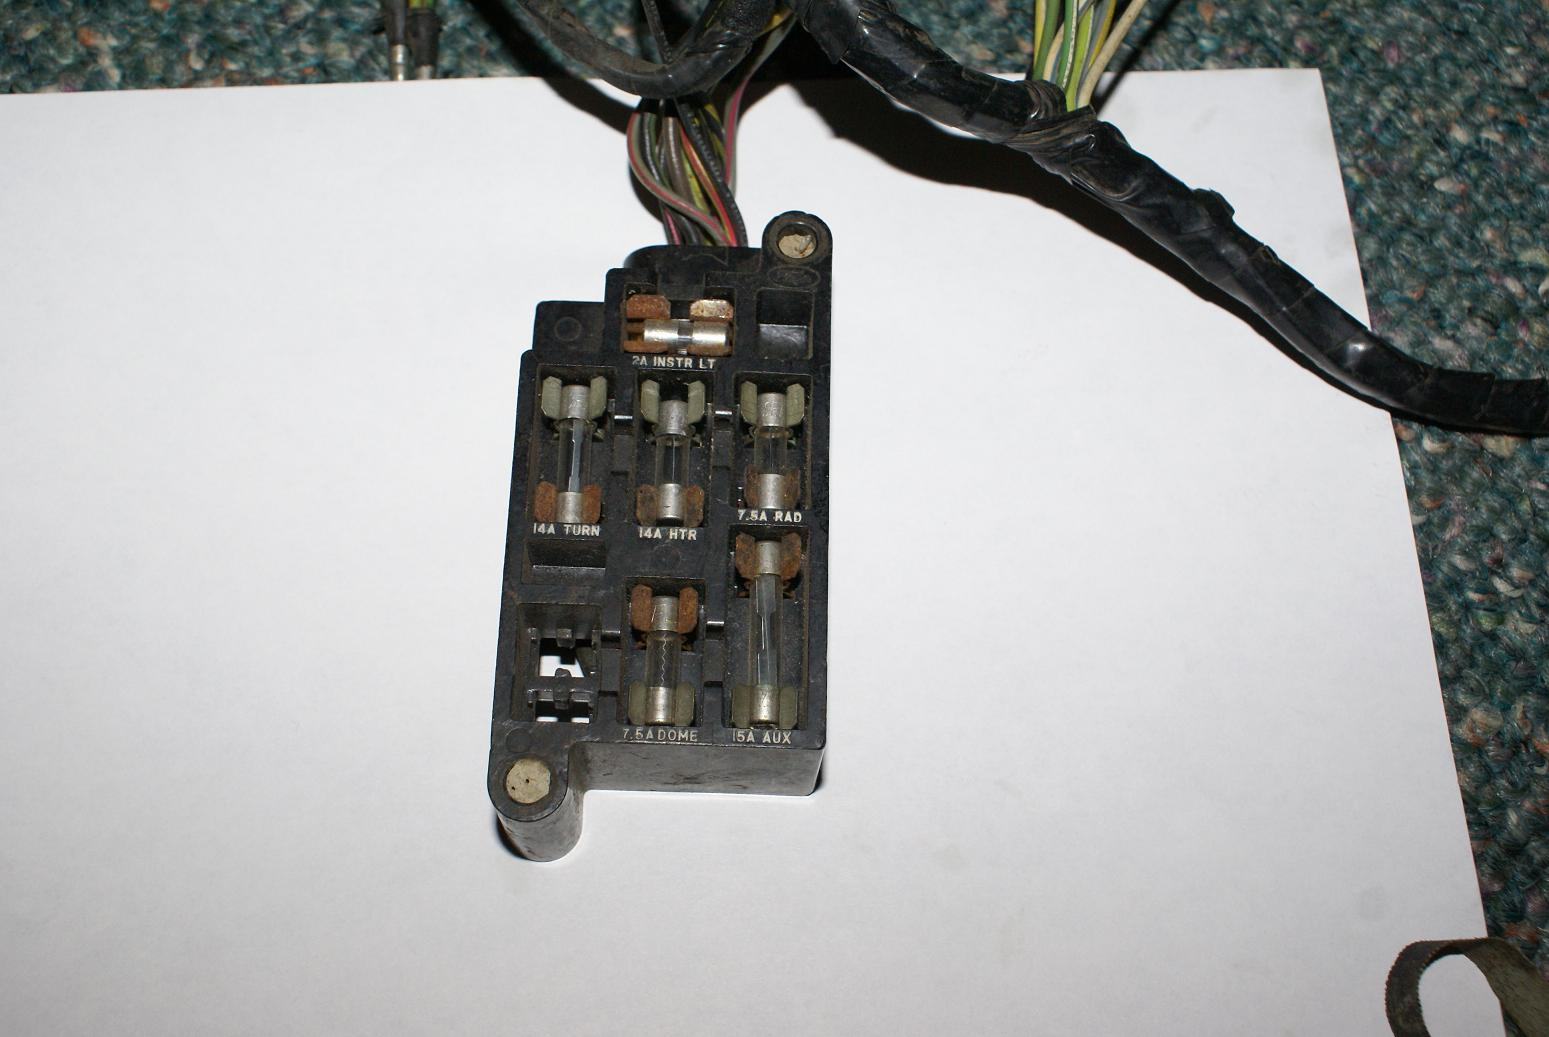 1964 1 2 mustang fuse box diagram jfQtoXB 1964 1 2 mustang fuse box diagram image details Turn Signal Fuse Location at gsmx.co